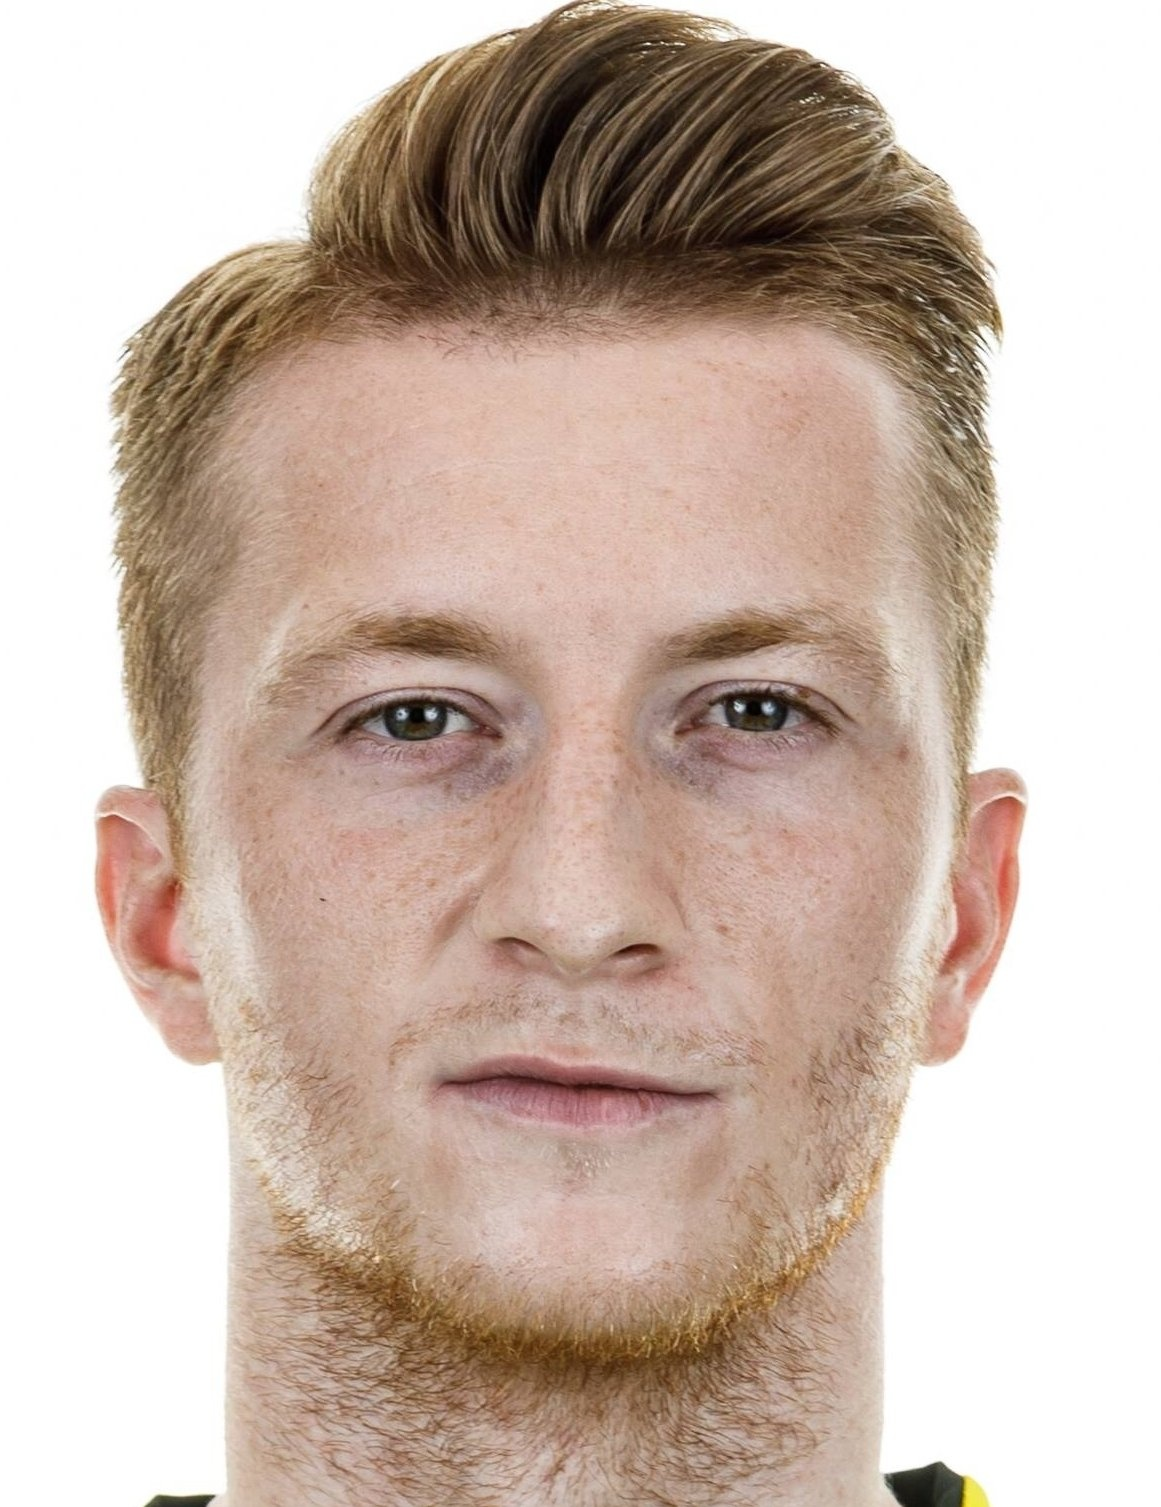 Marco Reus - Player Profile 18/19 | Transfermarkt